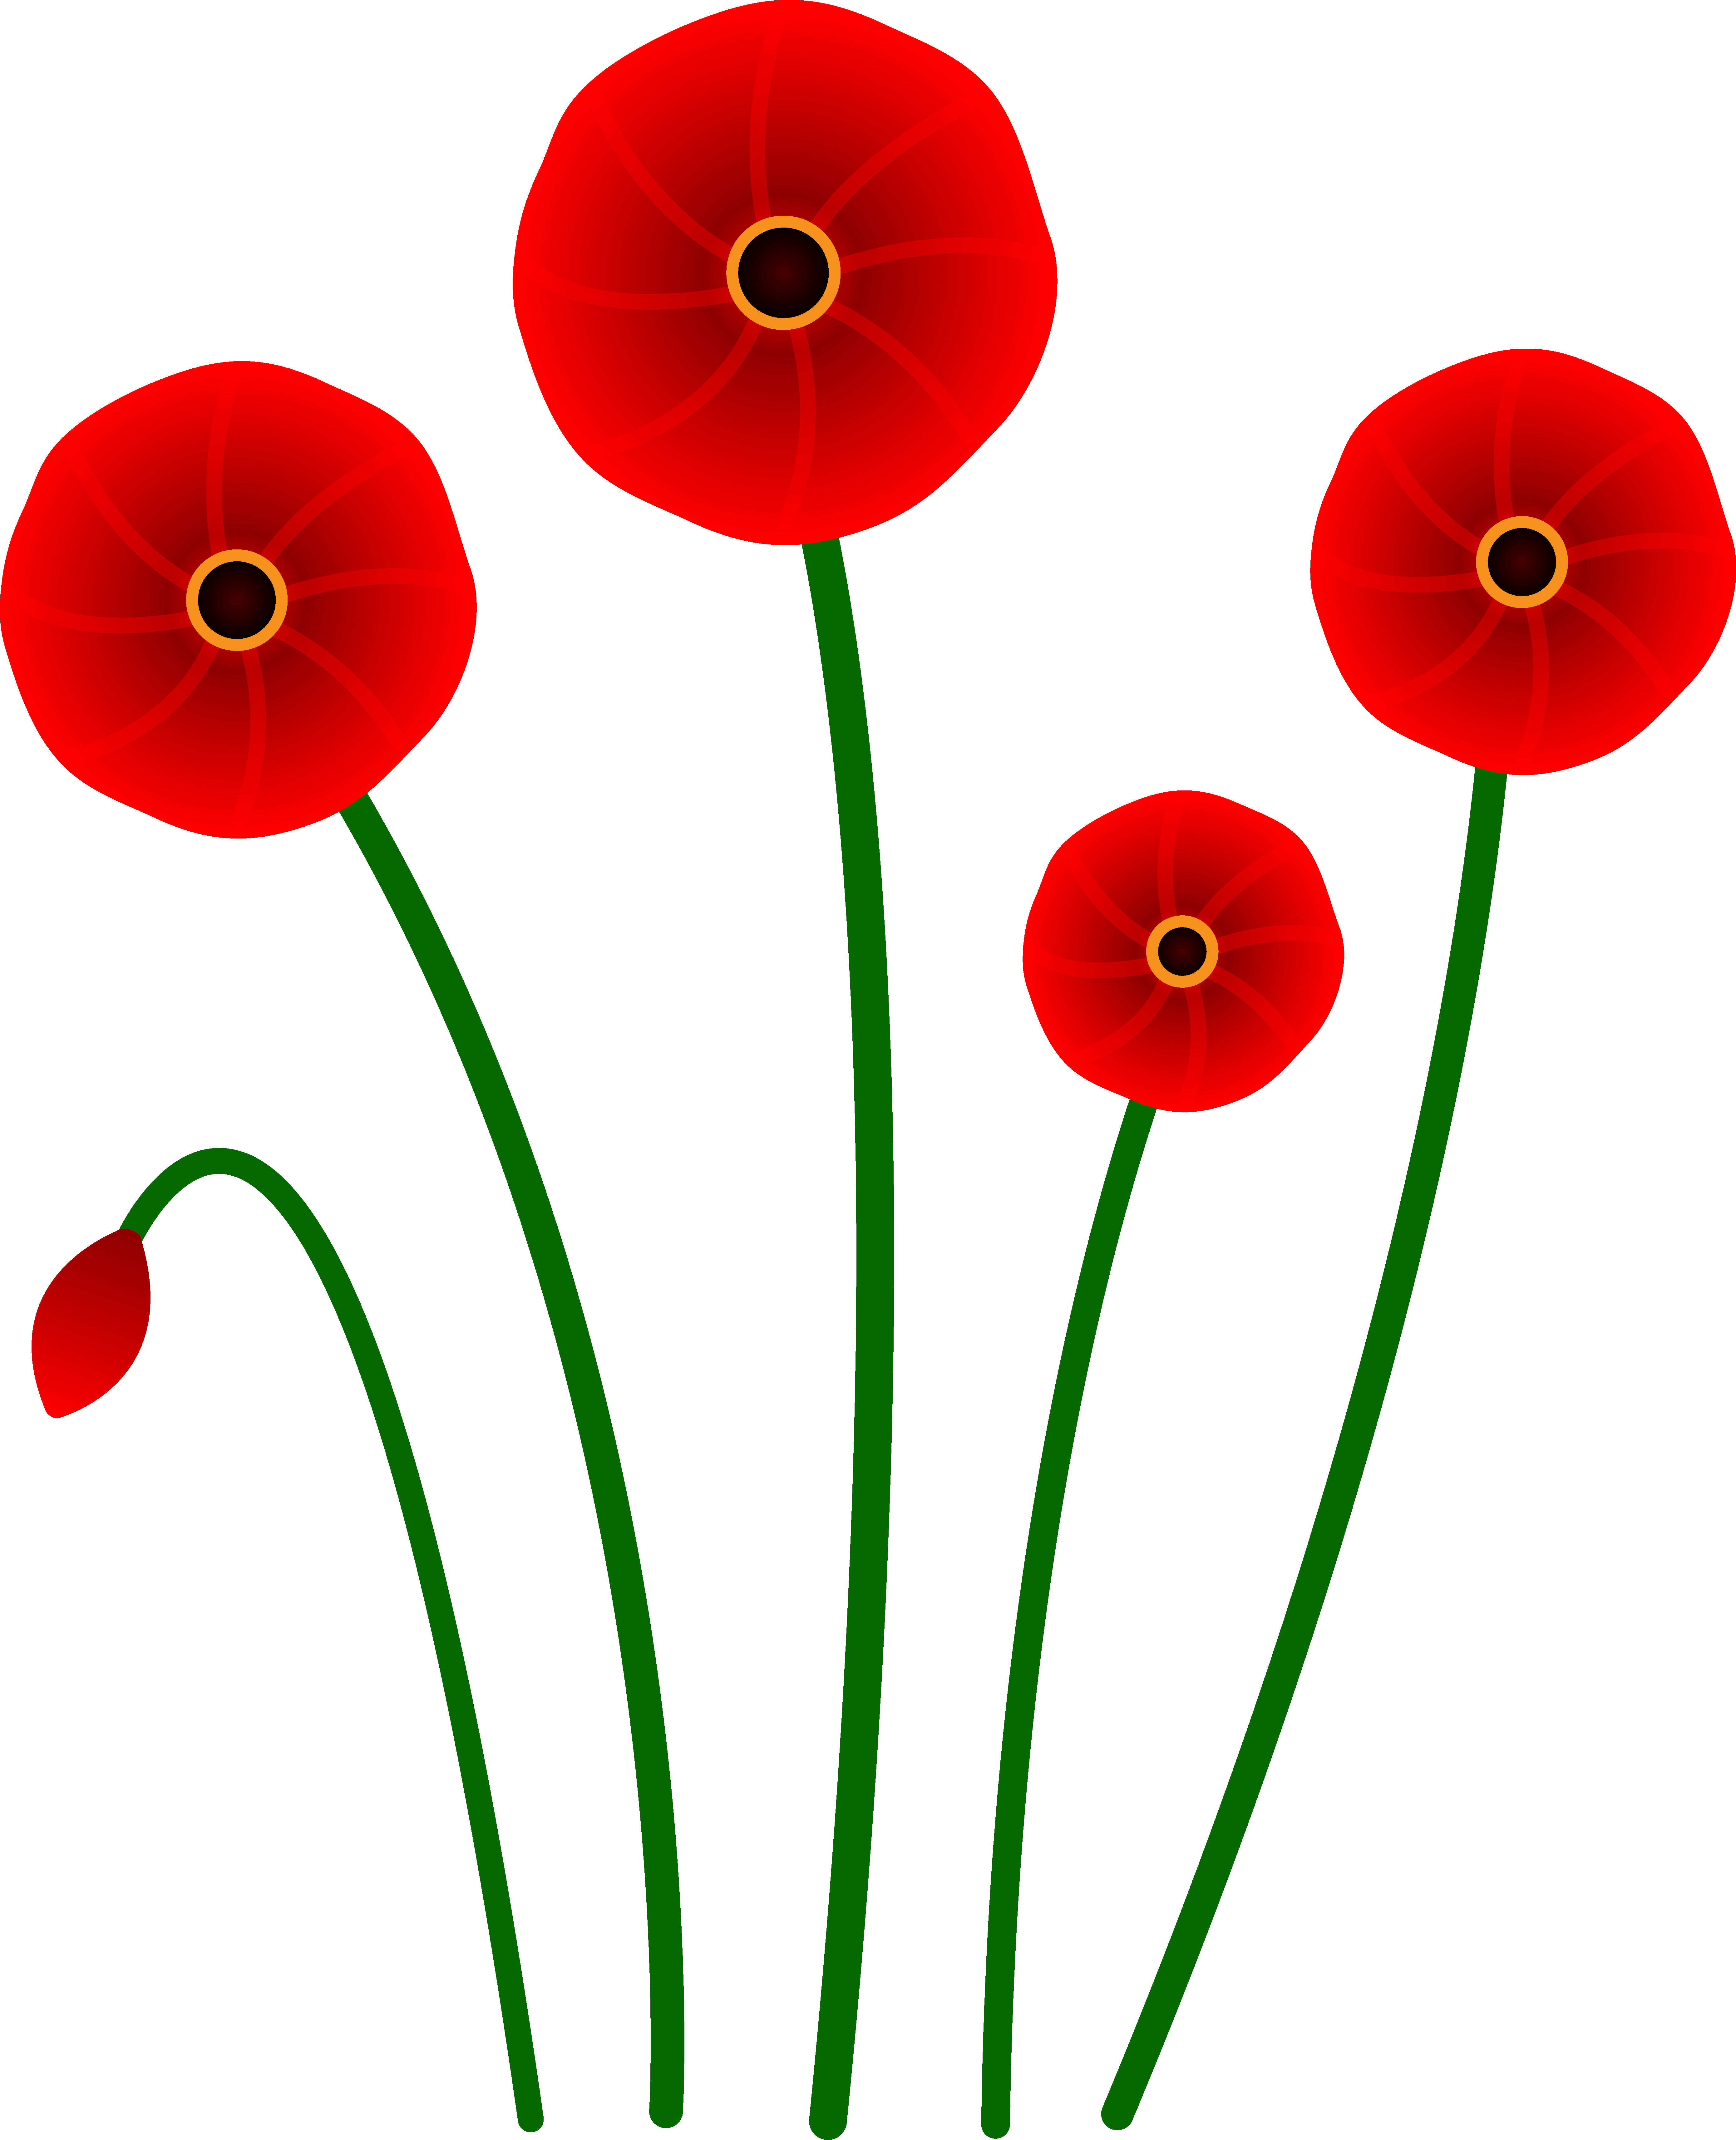 Free poppy flower clipart banner black and white stock Free Poppy Cliparts, Download Free Clip Art, Free Clip Art on ... banner black and white stock